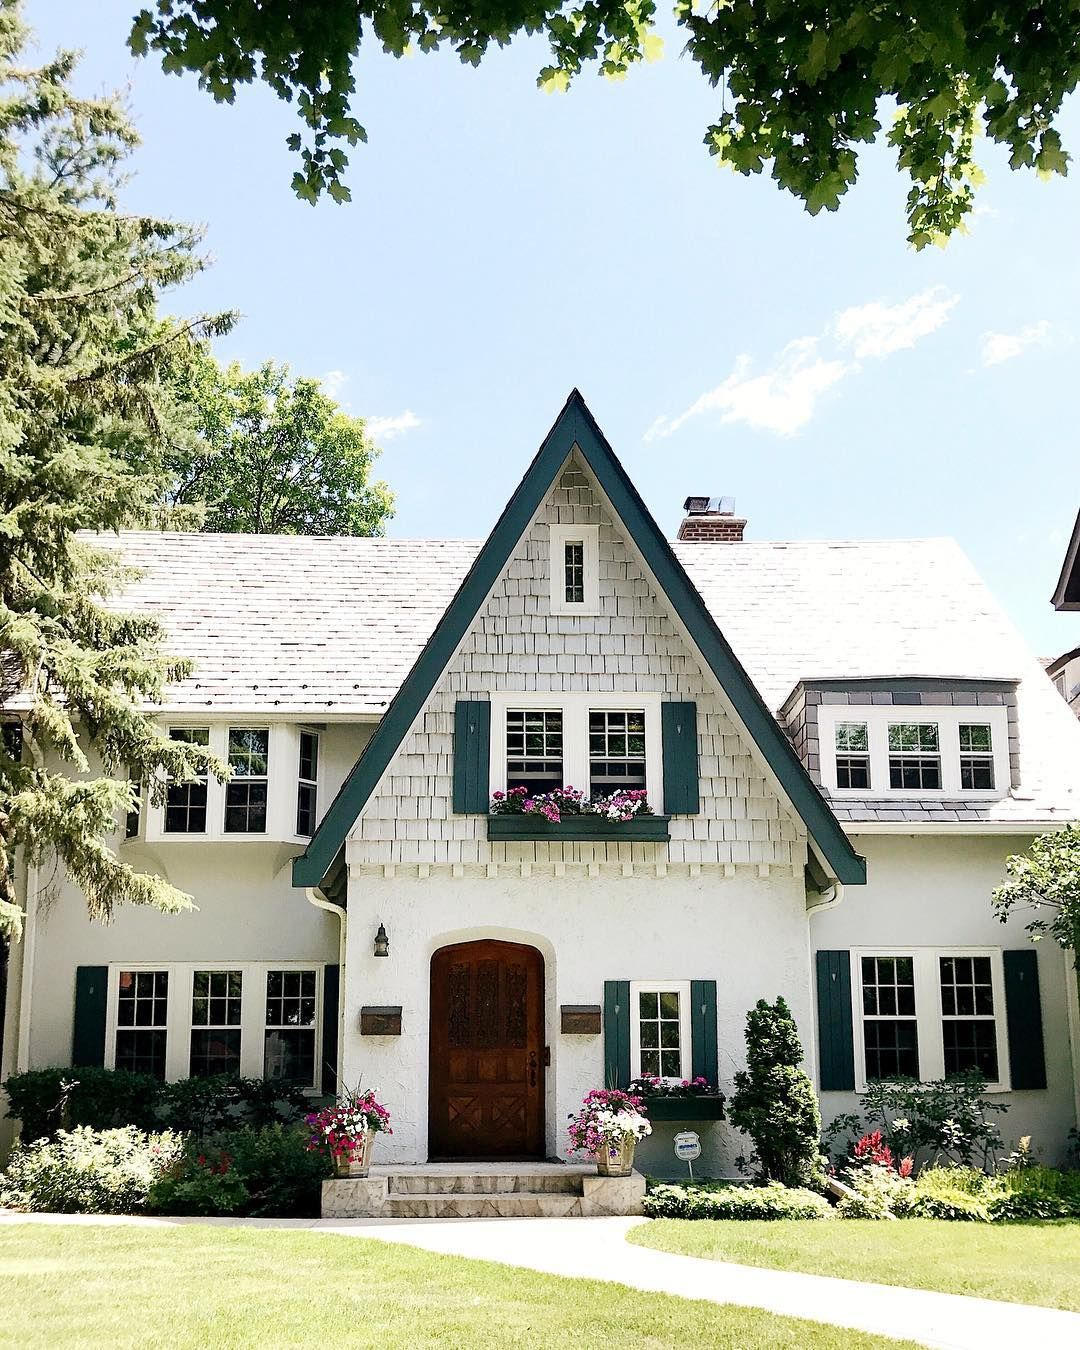 What makes the house different from a cottage, duplex, townhouse